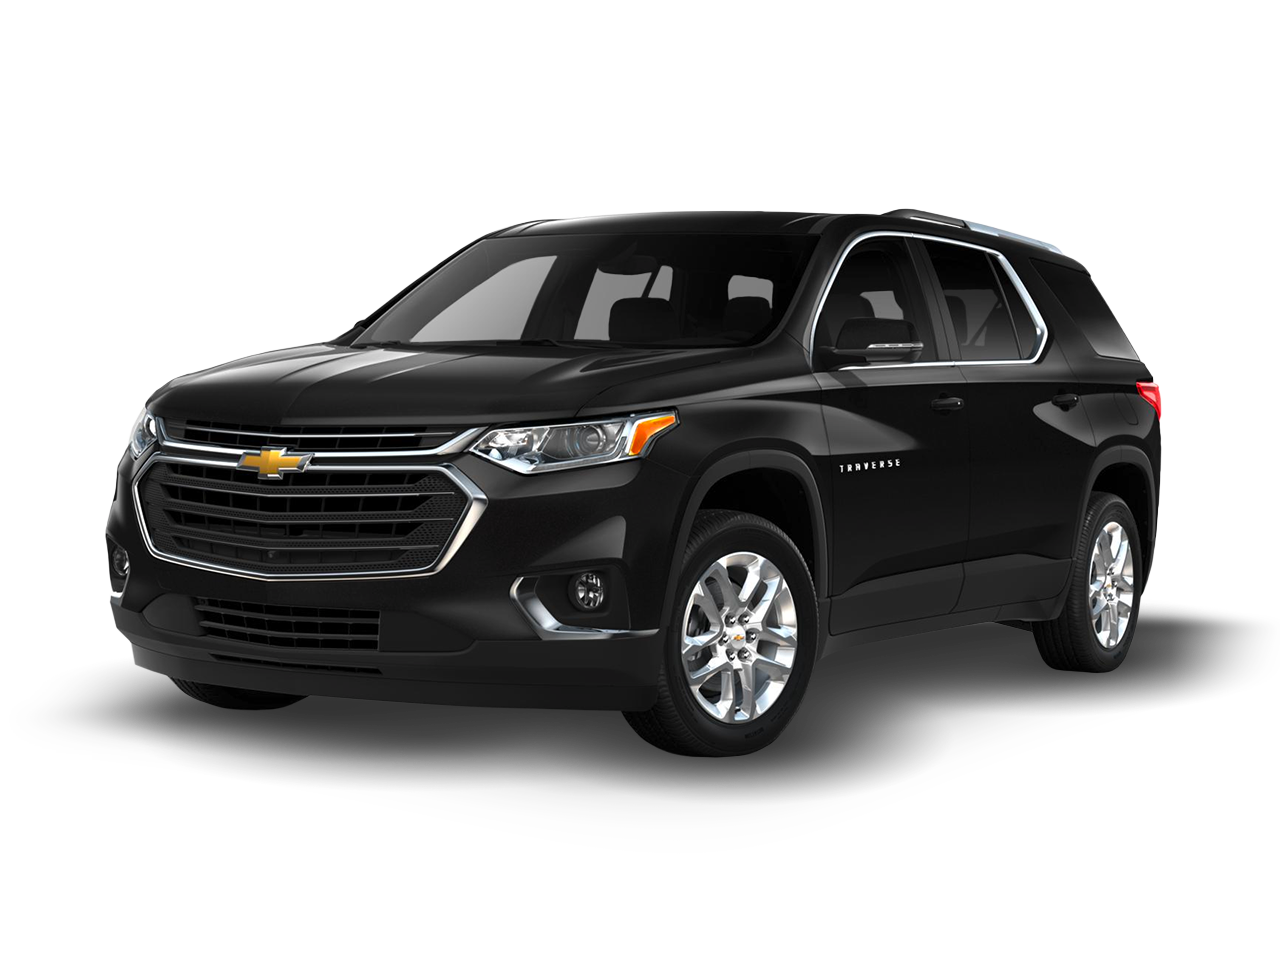 Chevy black bowtie png. Chevrolet traverse for